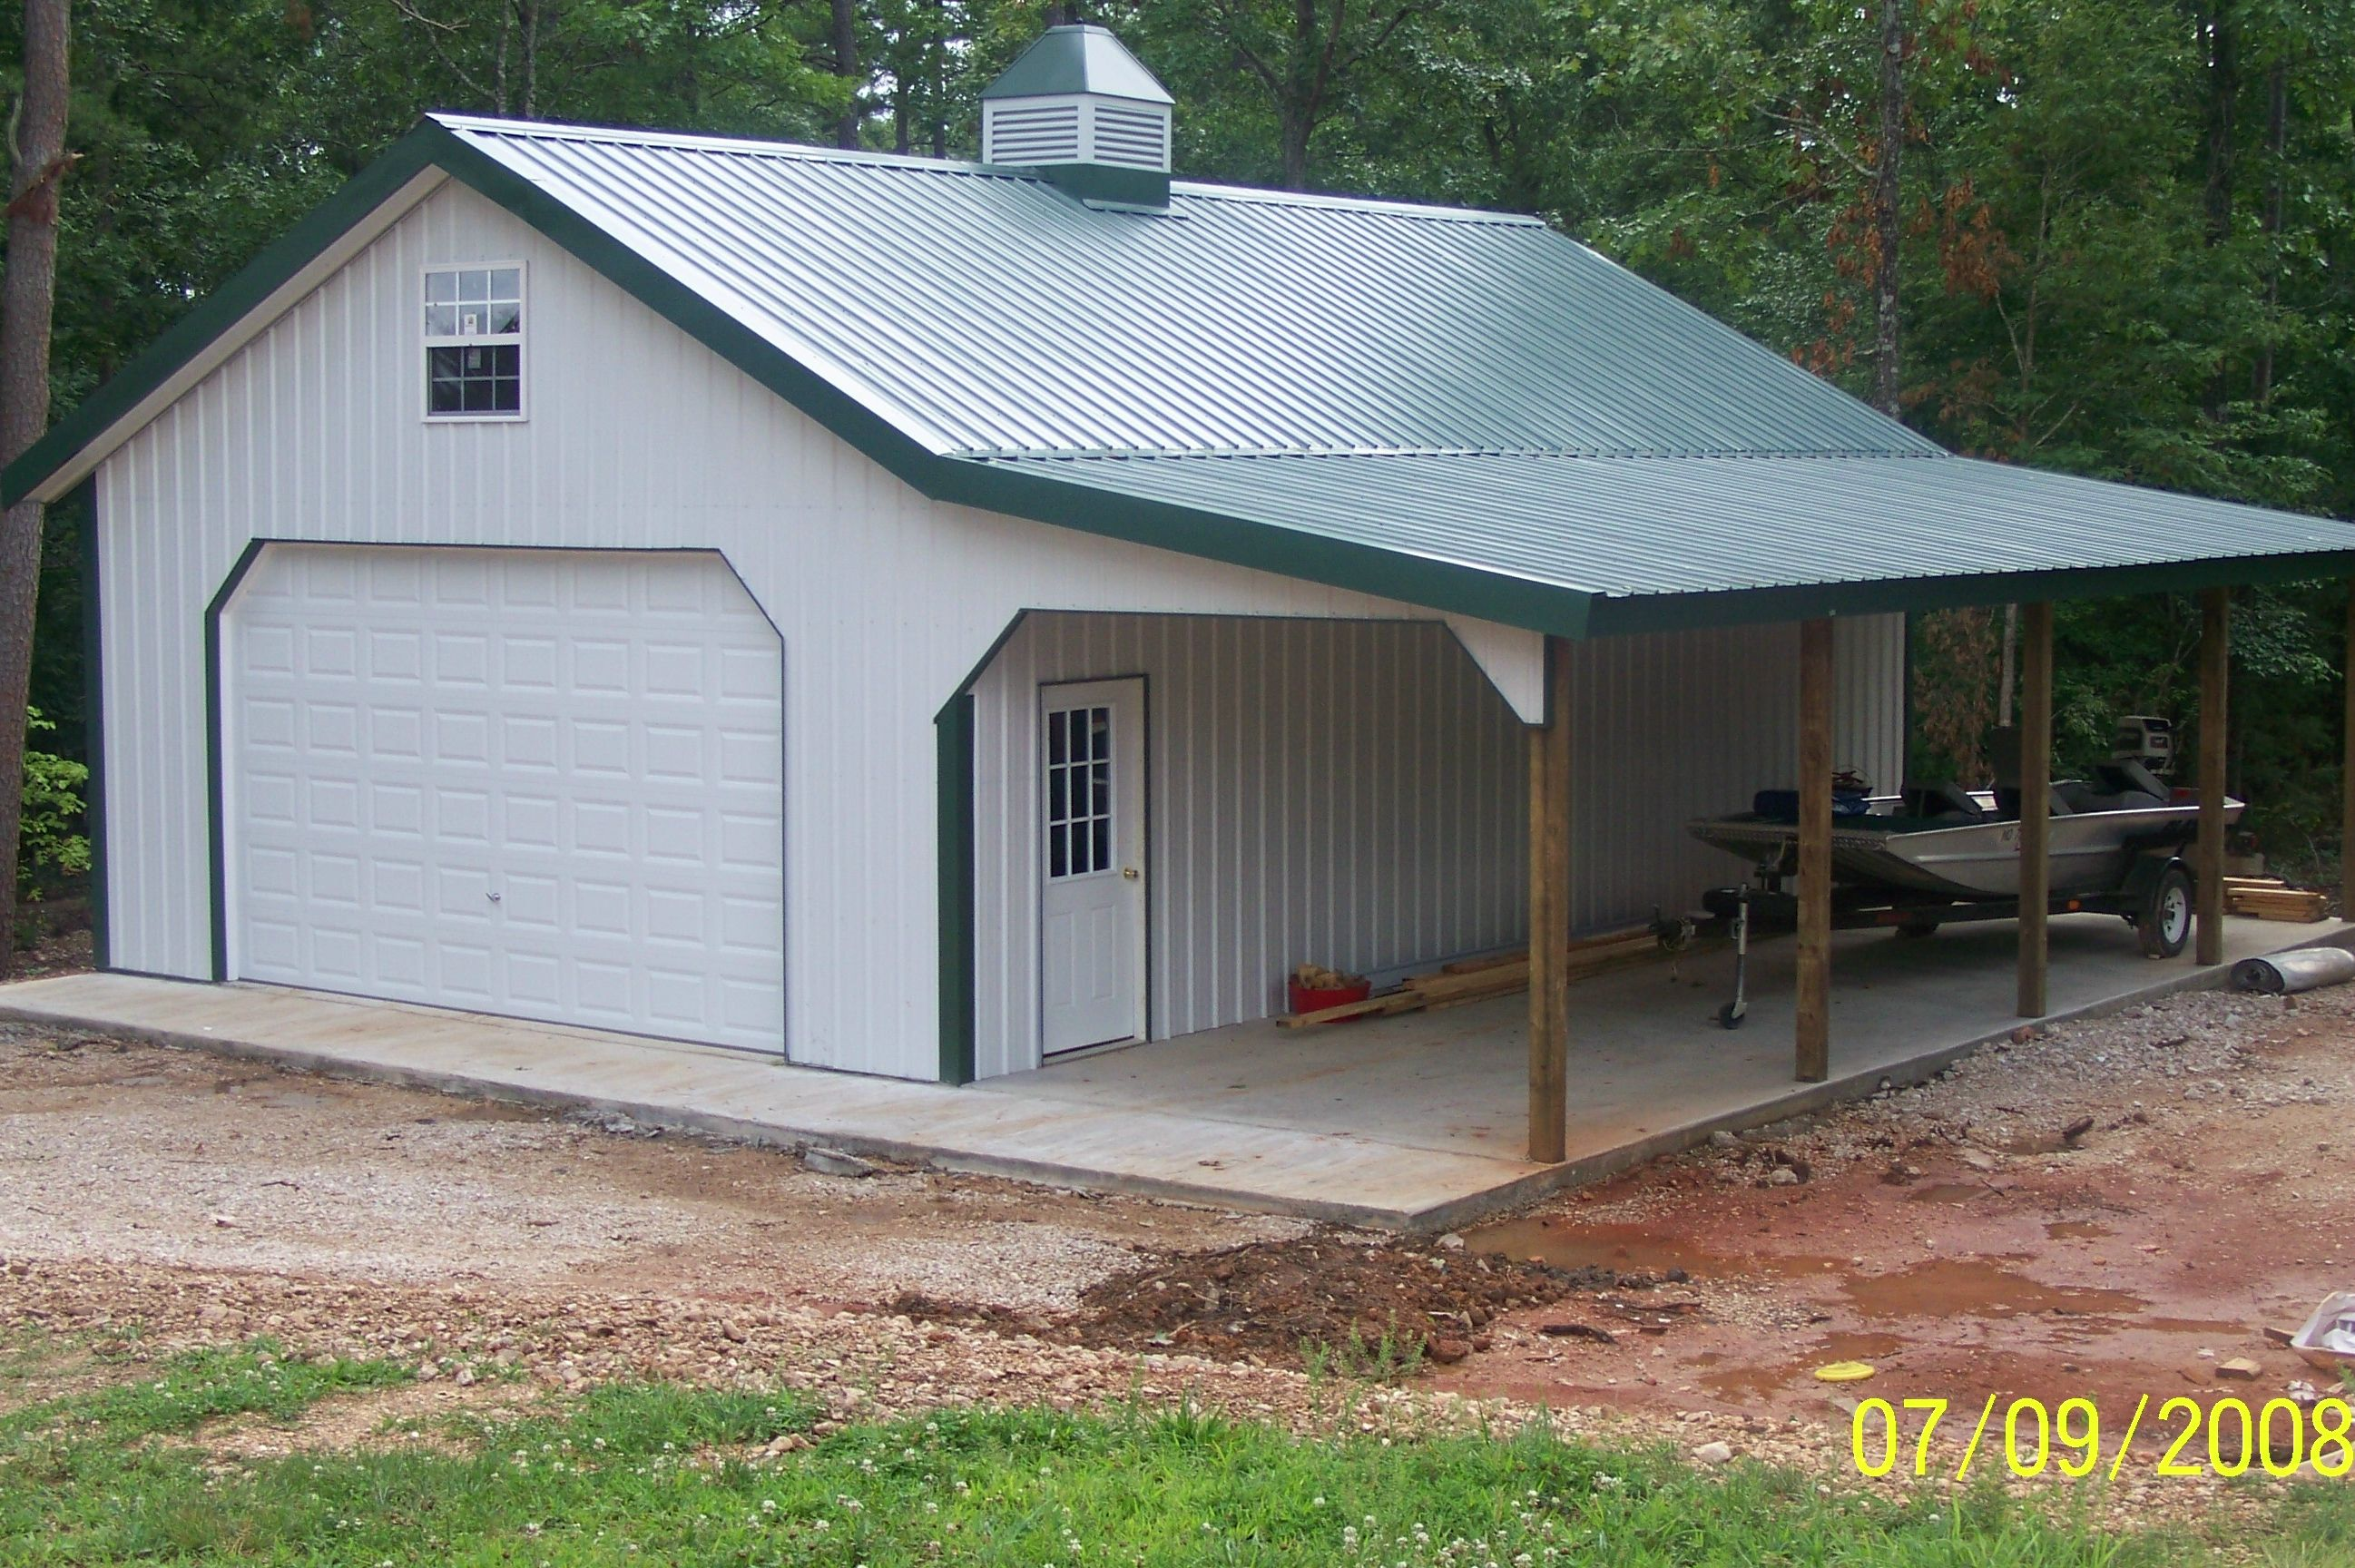 Decor tips metal roofing for pole barn houses with prefab for Steel garage plans